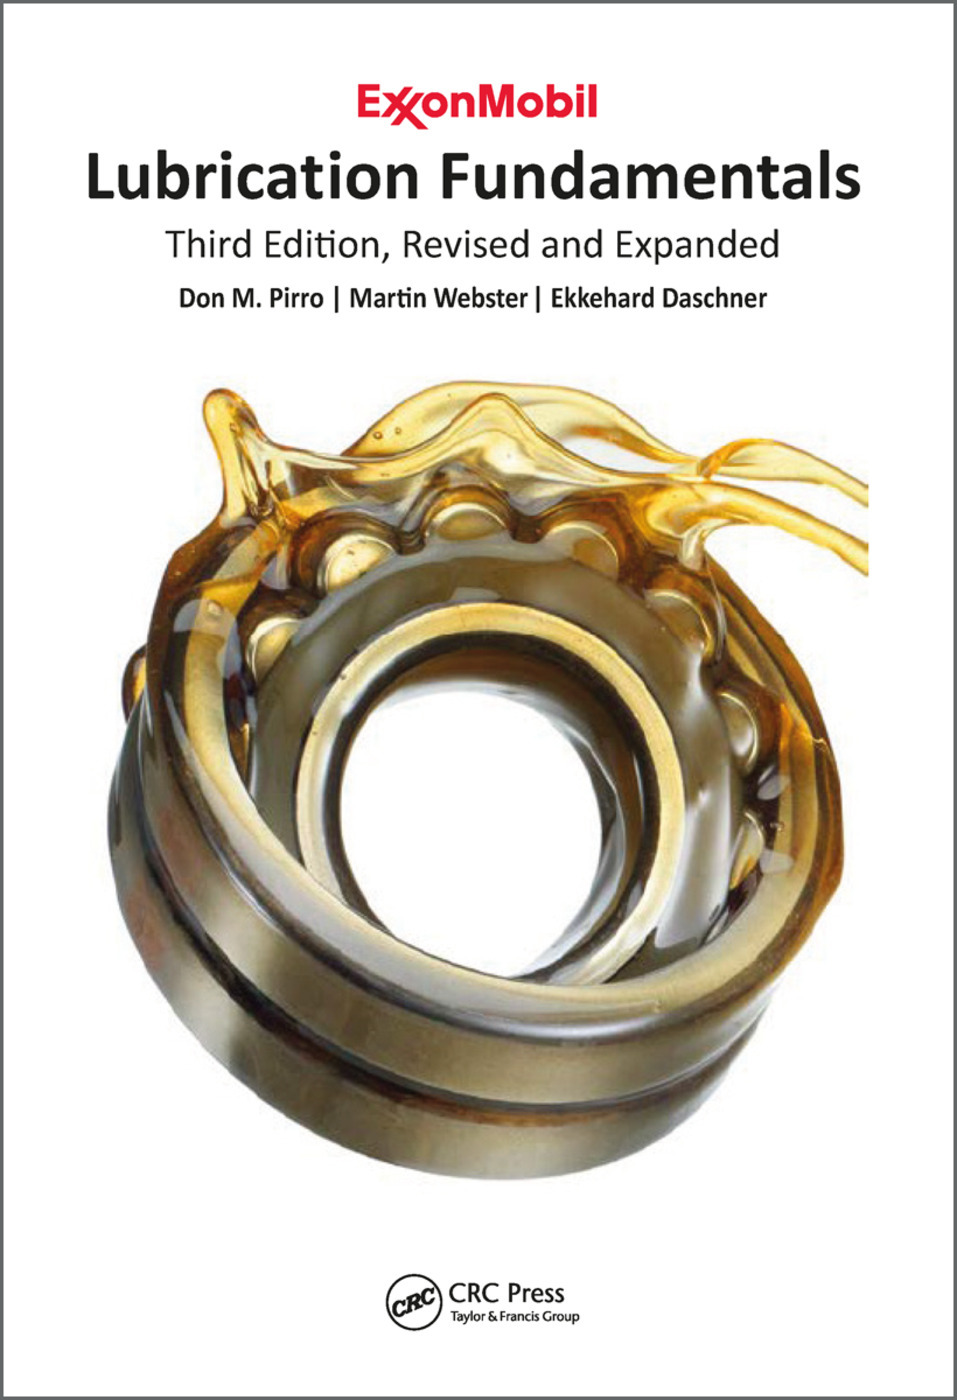 Lubrication Fundamentals Revised And Expanded 3rd Edition Don M